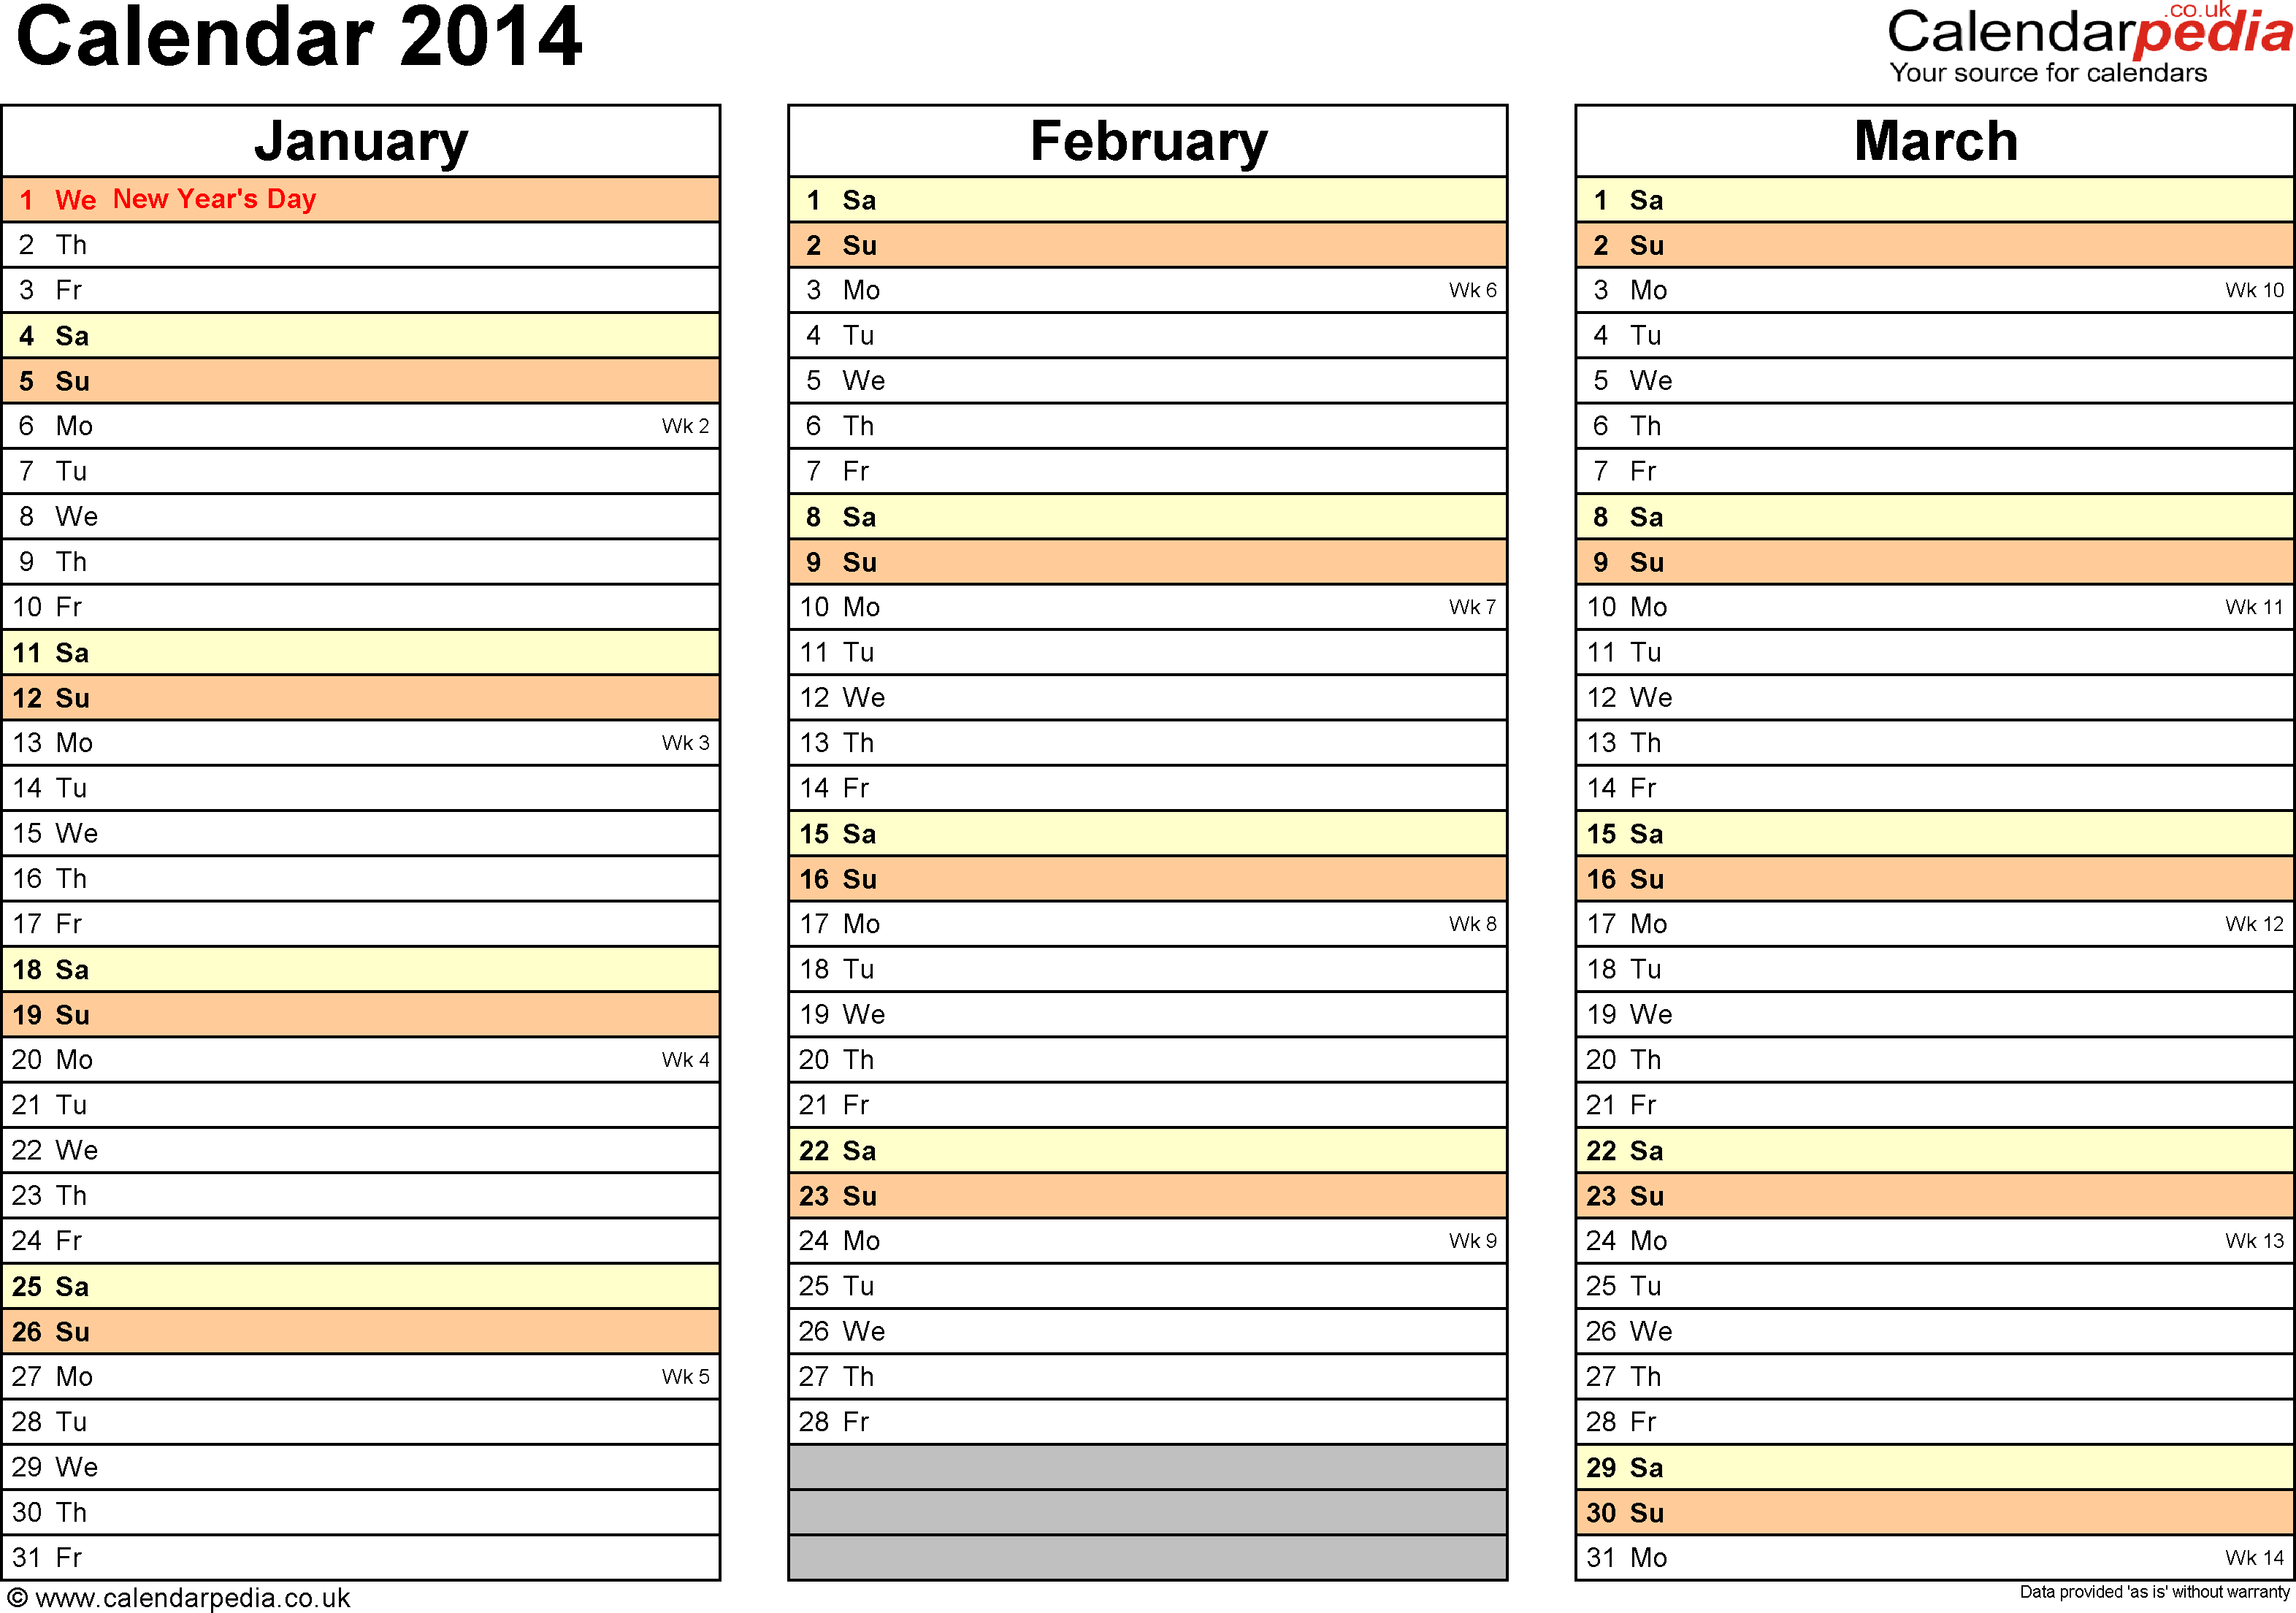 Excel year planner/calendar 2014 UK: 15 free printable templates